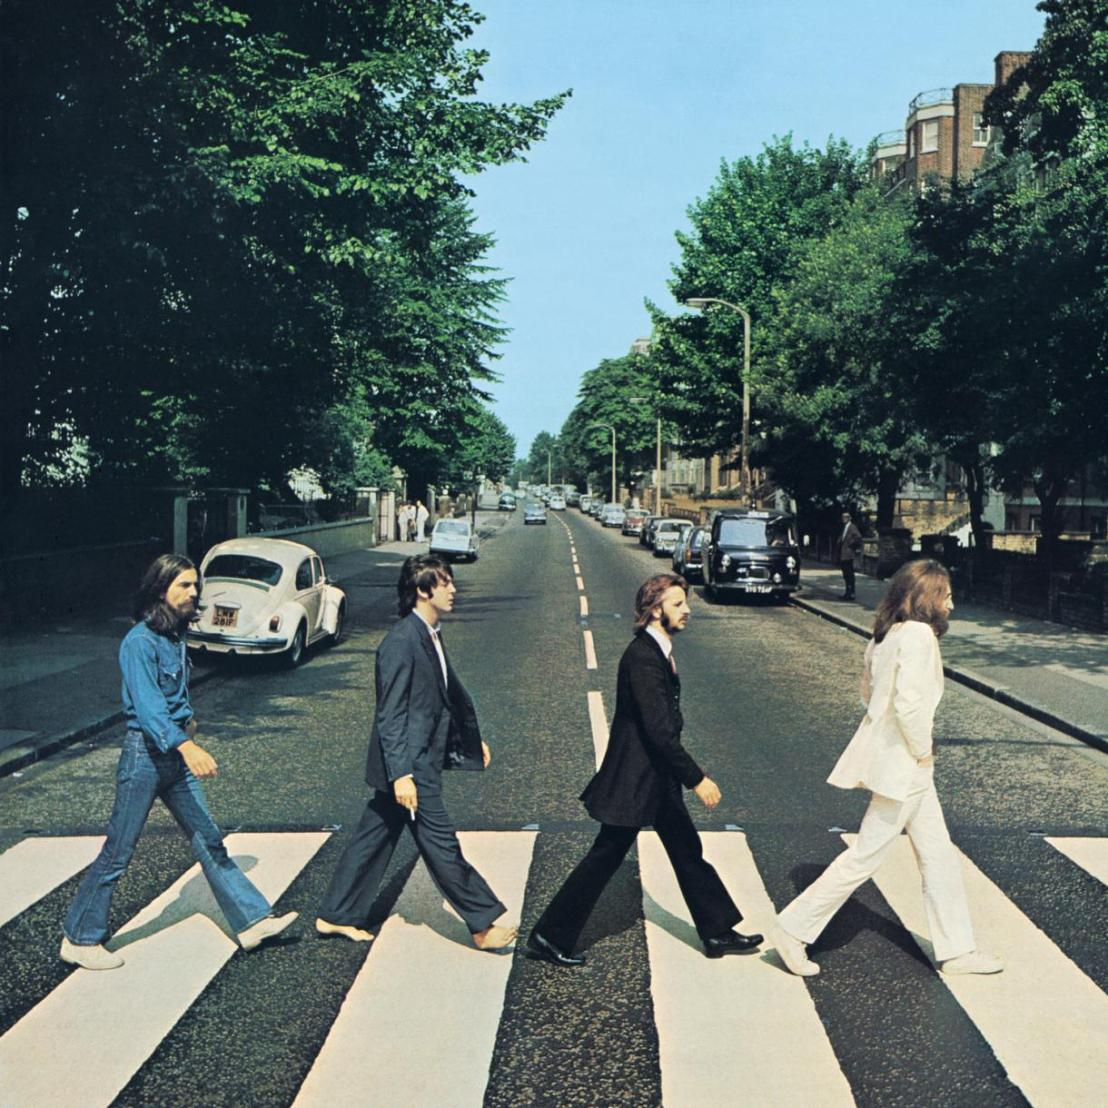 47 Years of AbbeyRoad